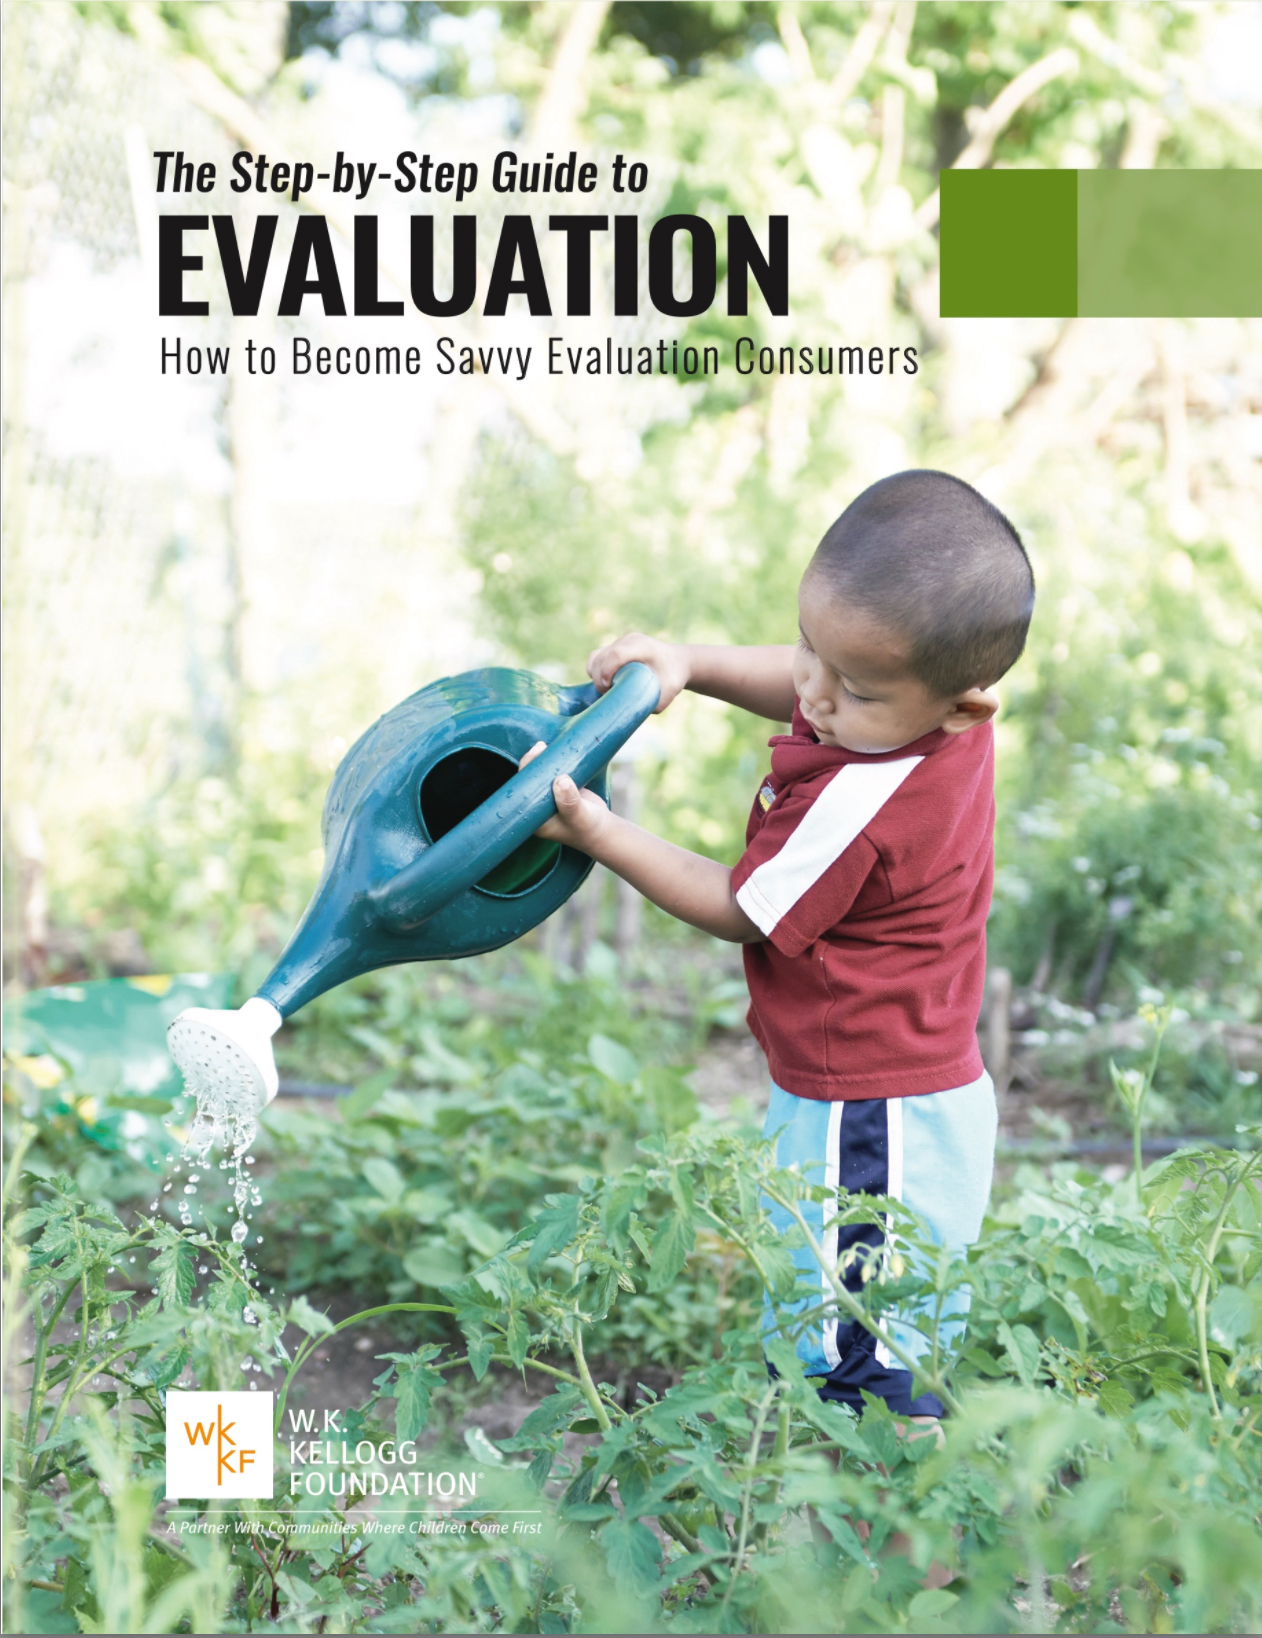 Book jacket for The Step-by-Step Guide to Evaluation